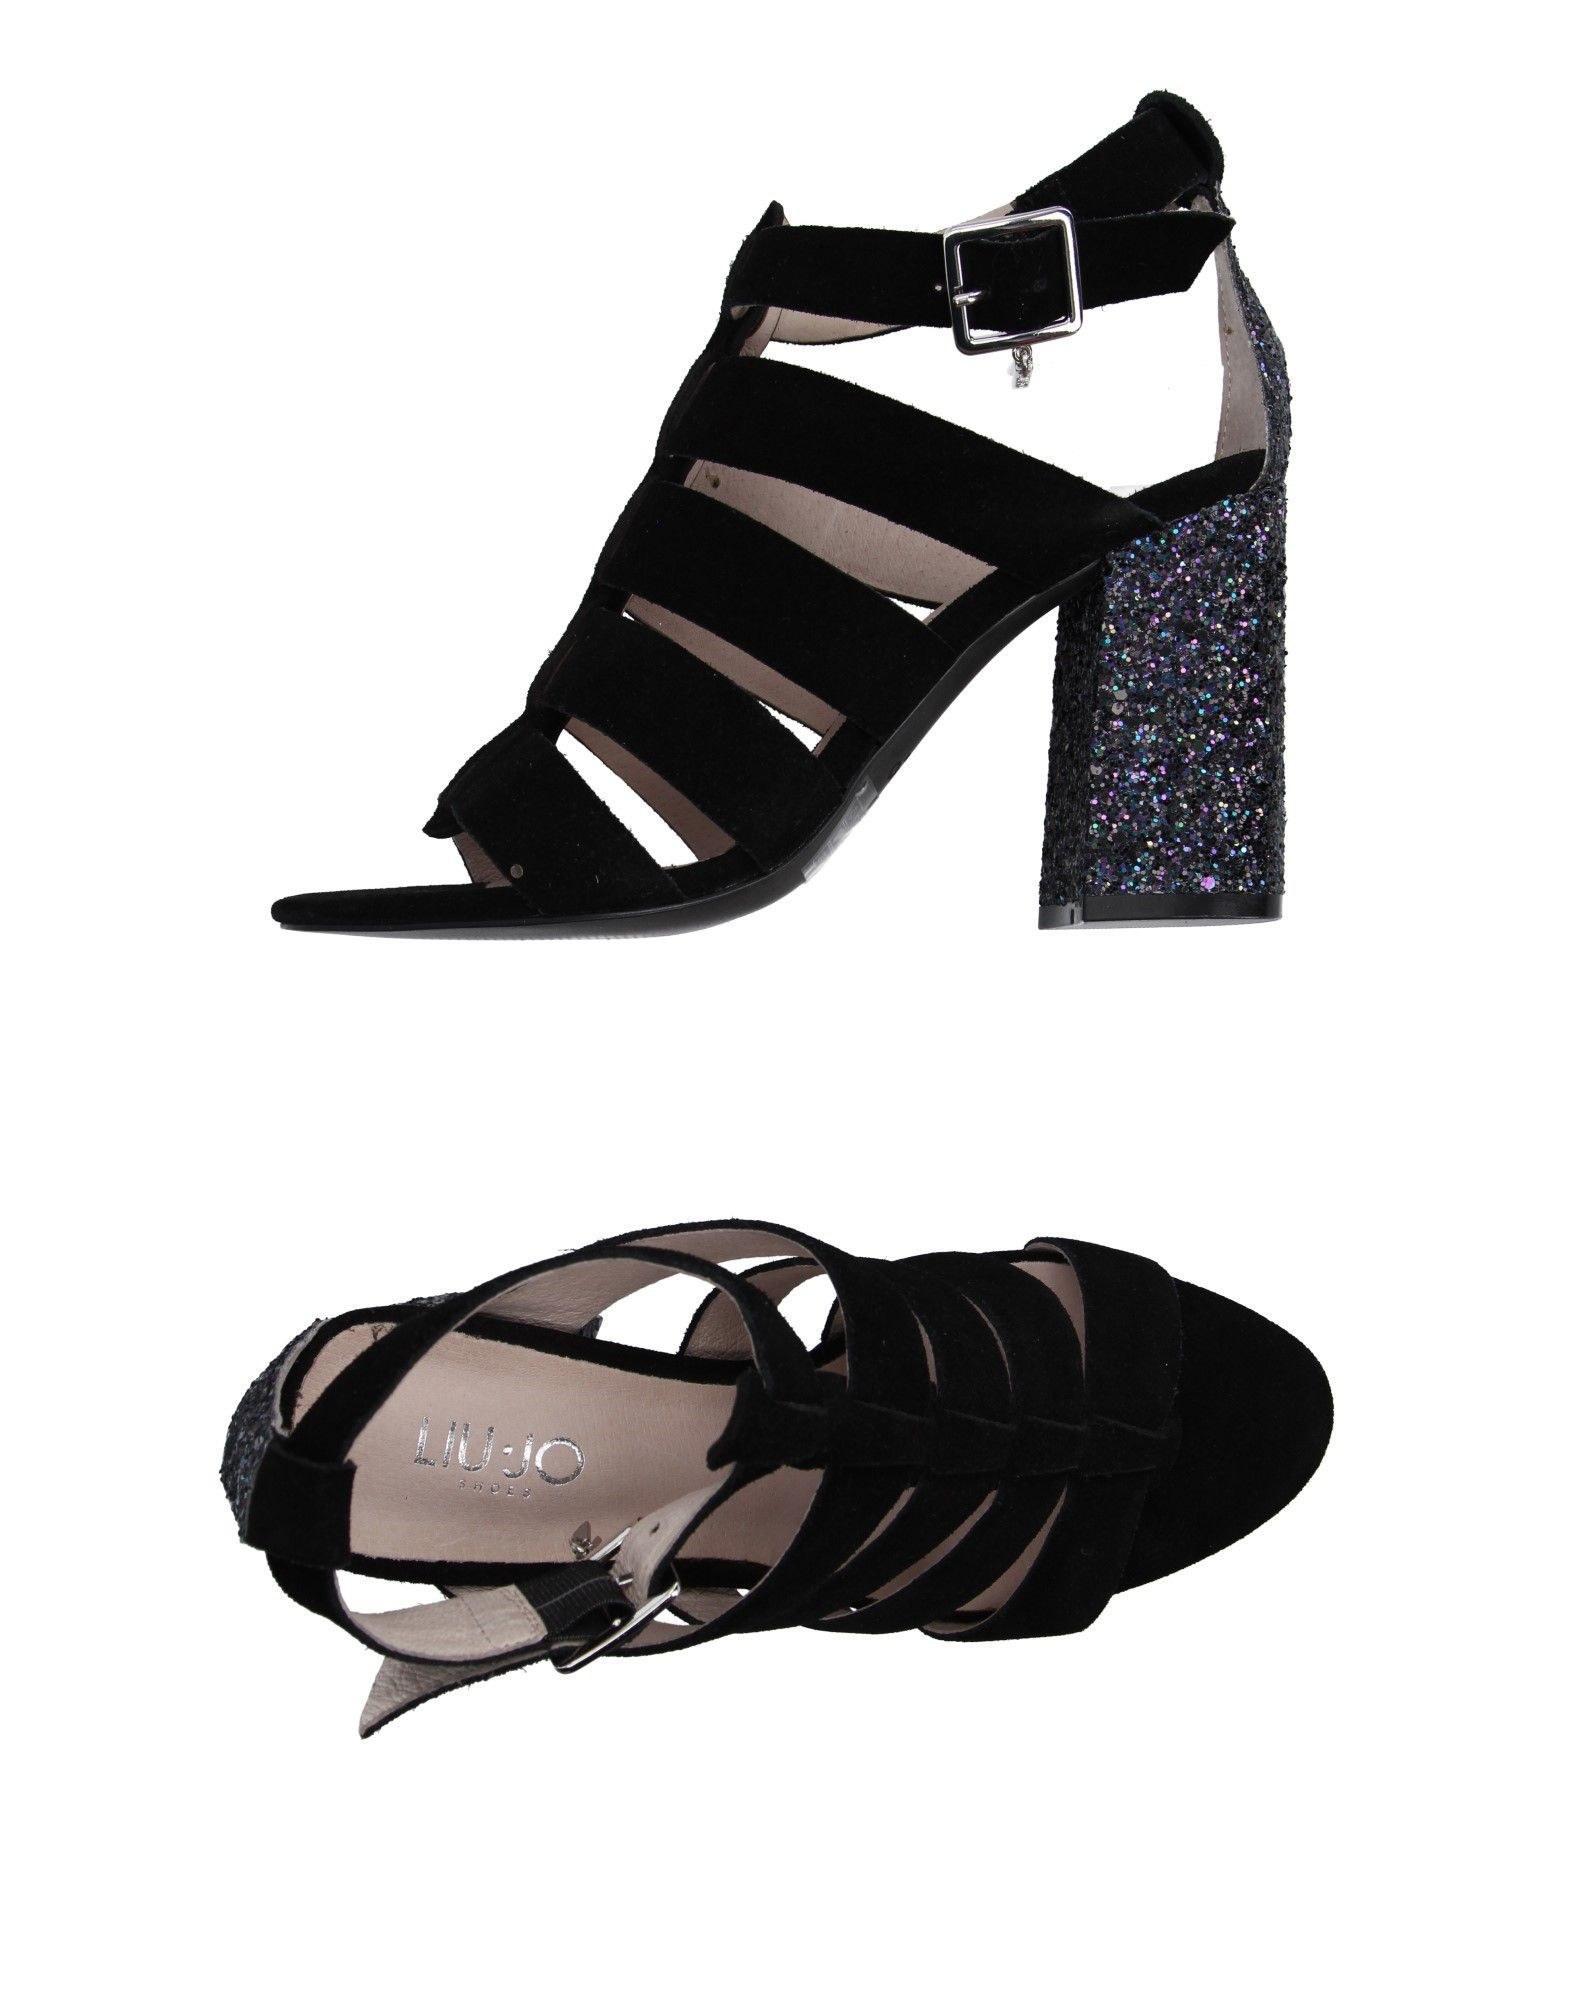 Sandales Liu •Jo Shoes Femme - Sandales Liu •Jo Shoes sur